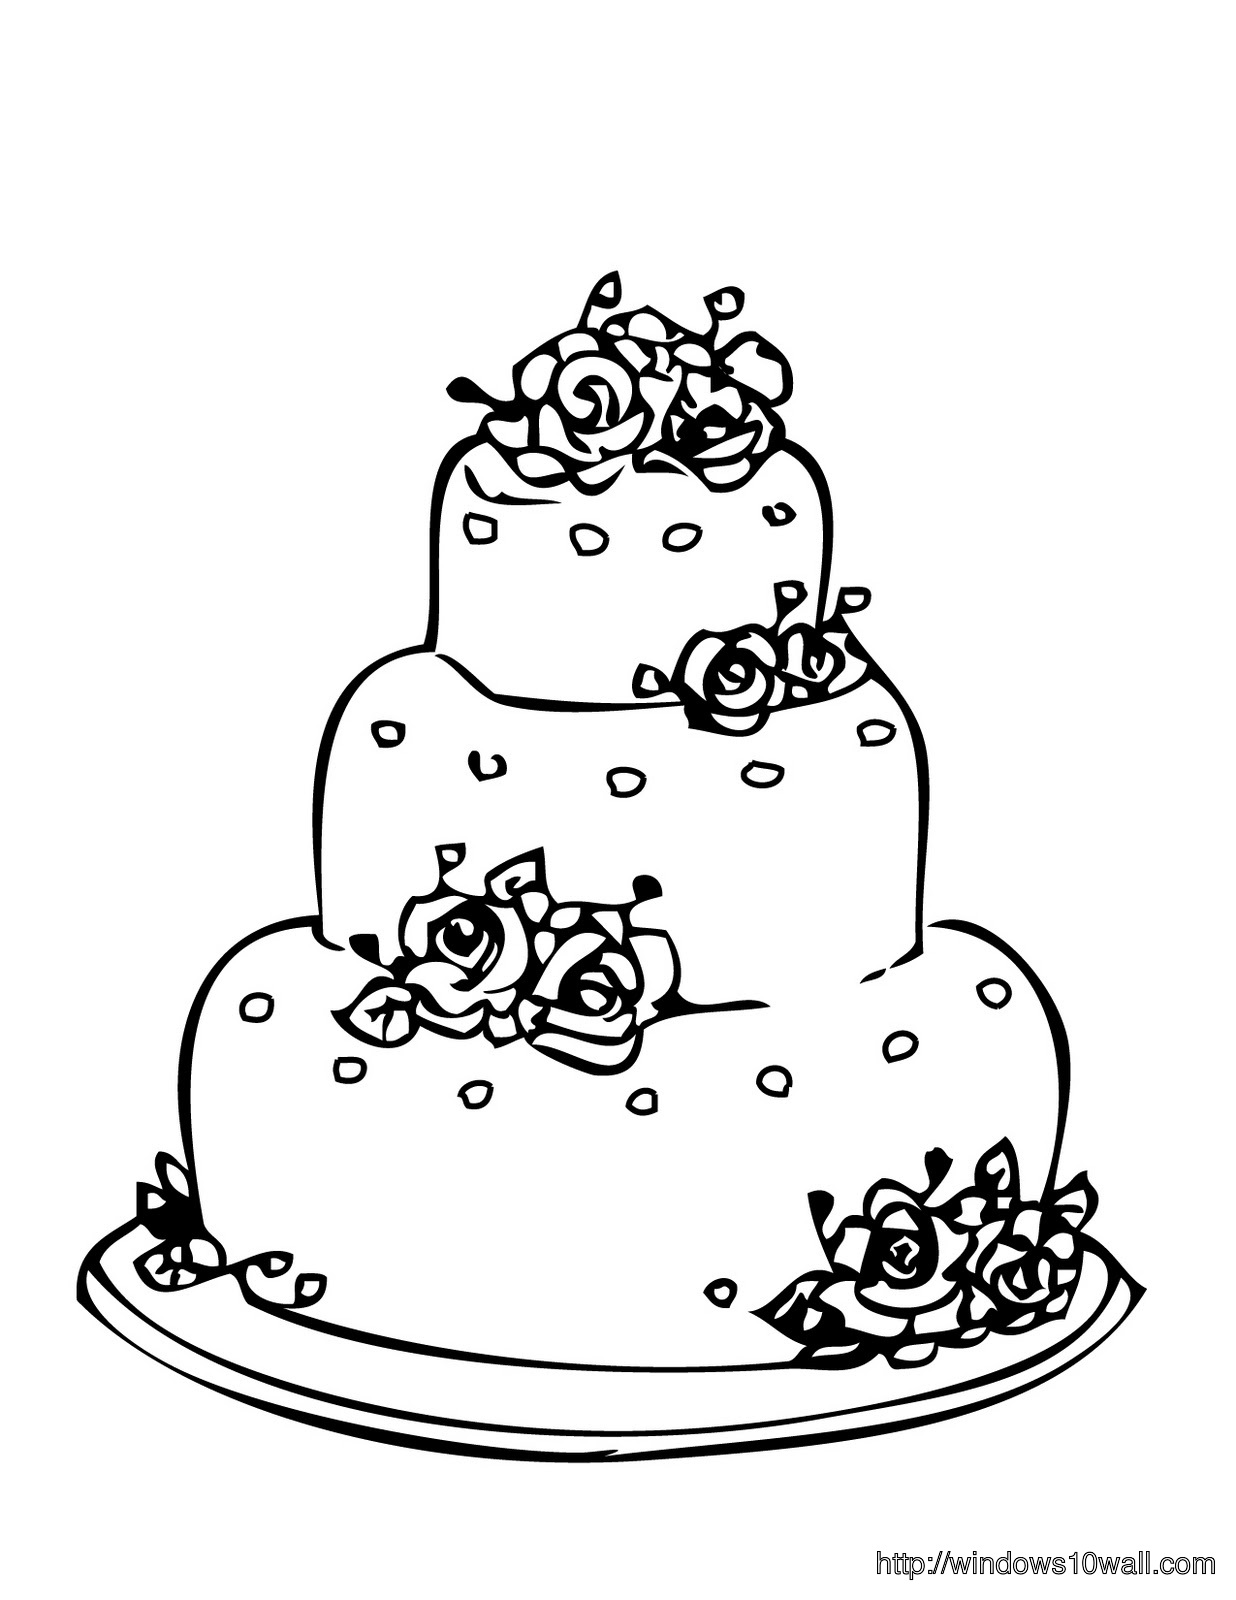 Cake Coloring Page for Kids Wallpaper